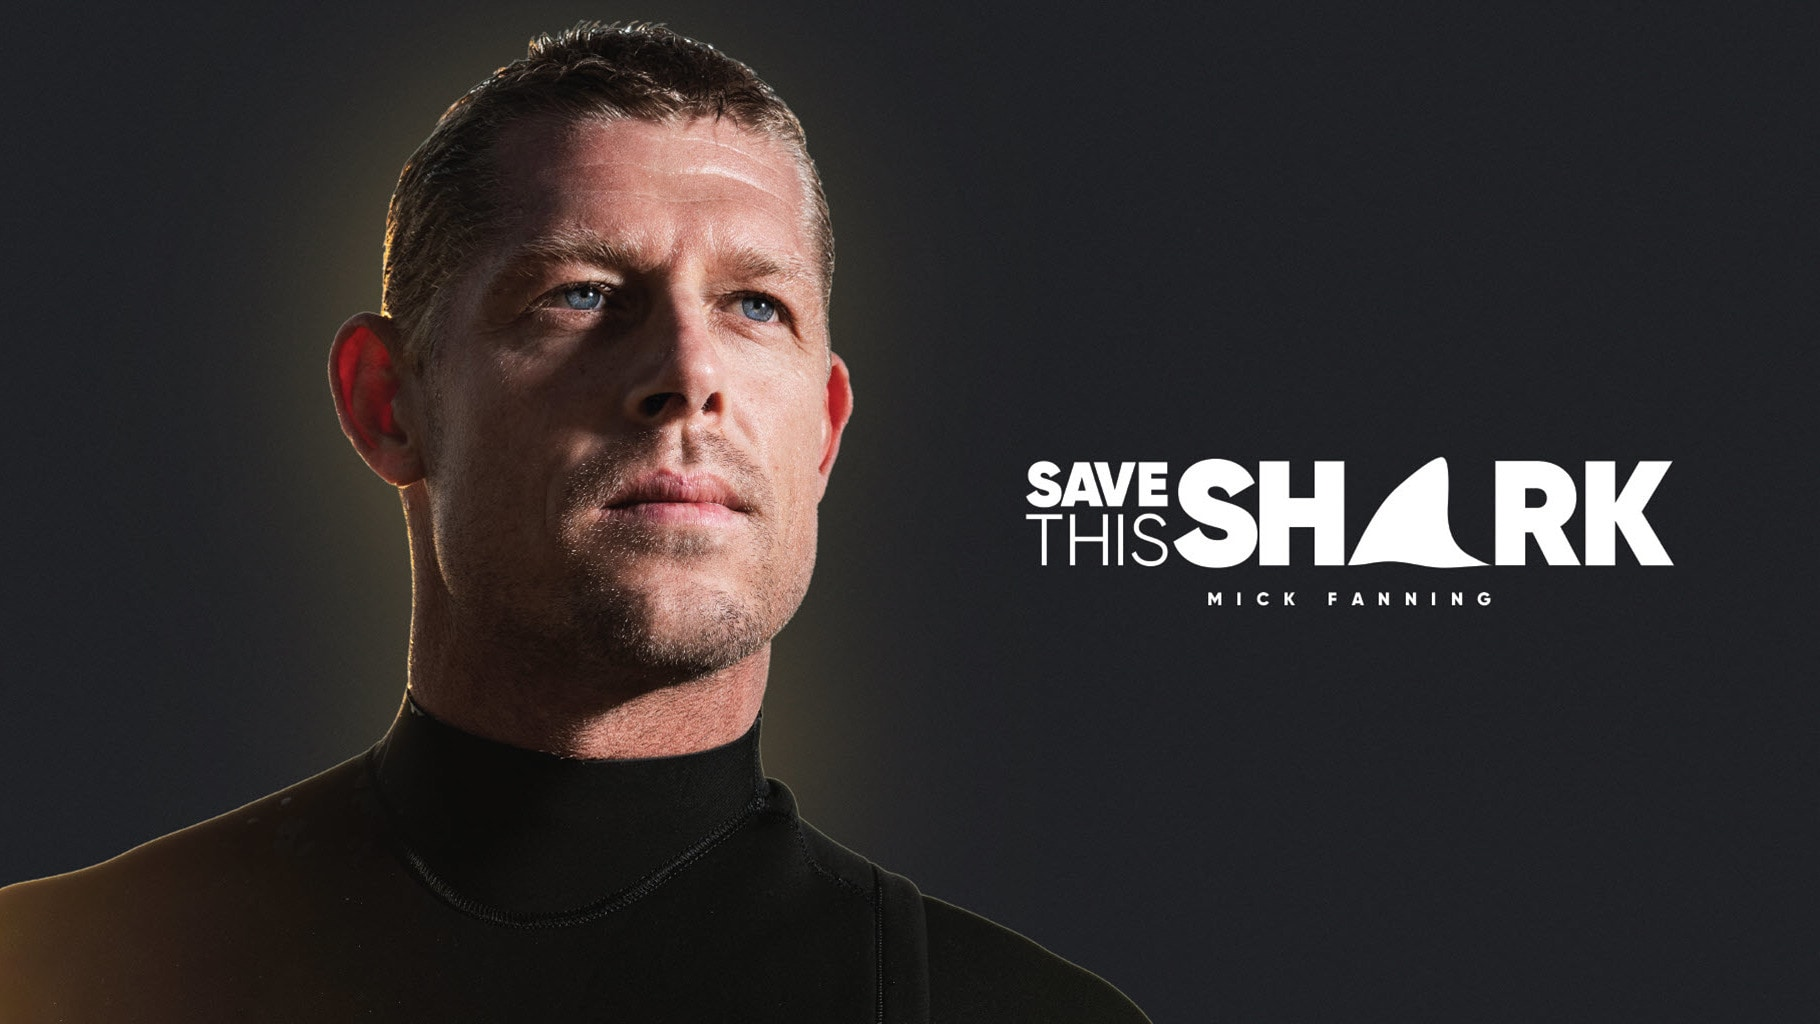 Save This Shark! And save the date for this new show from Nat Geo and Aussie legend, Mick Fanning